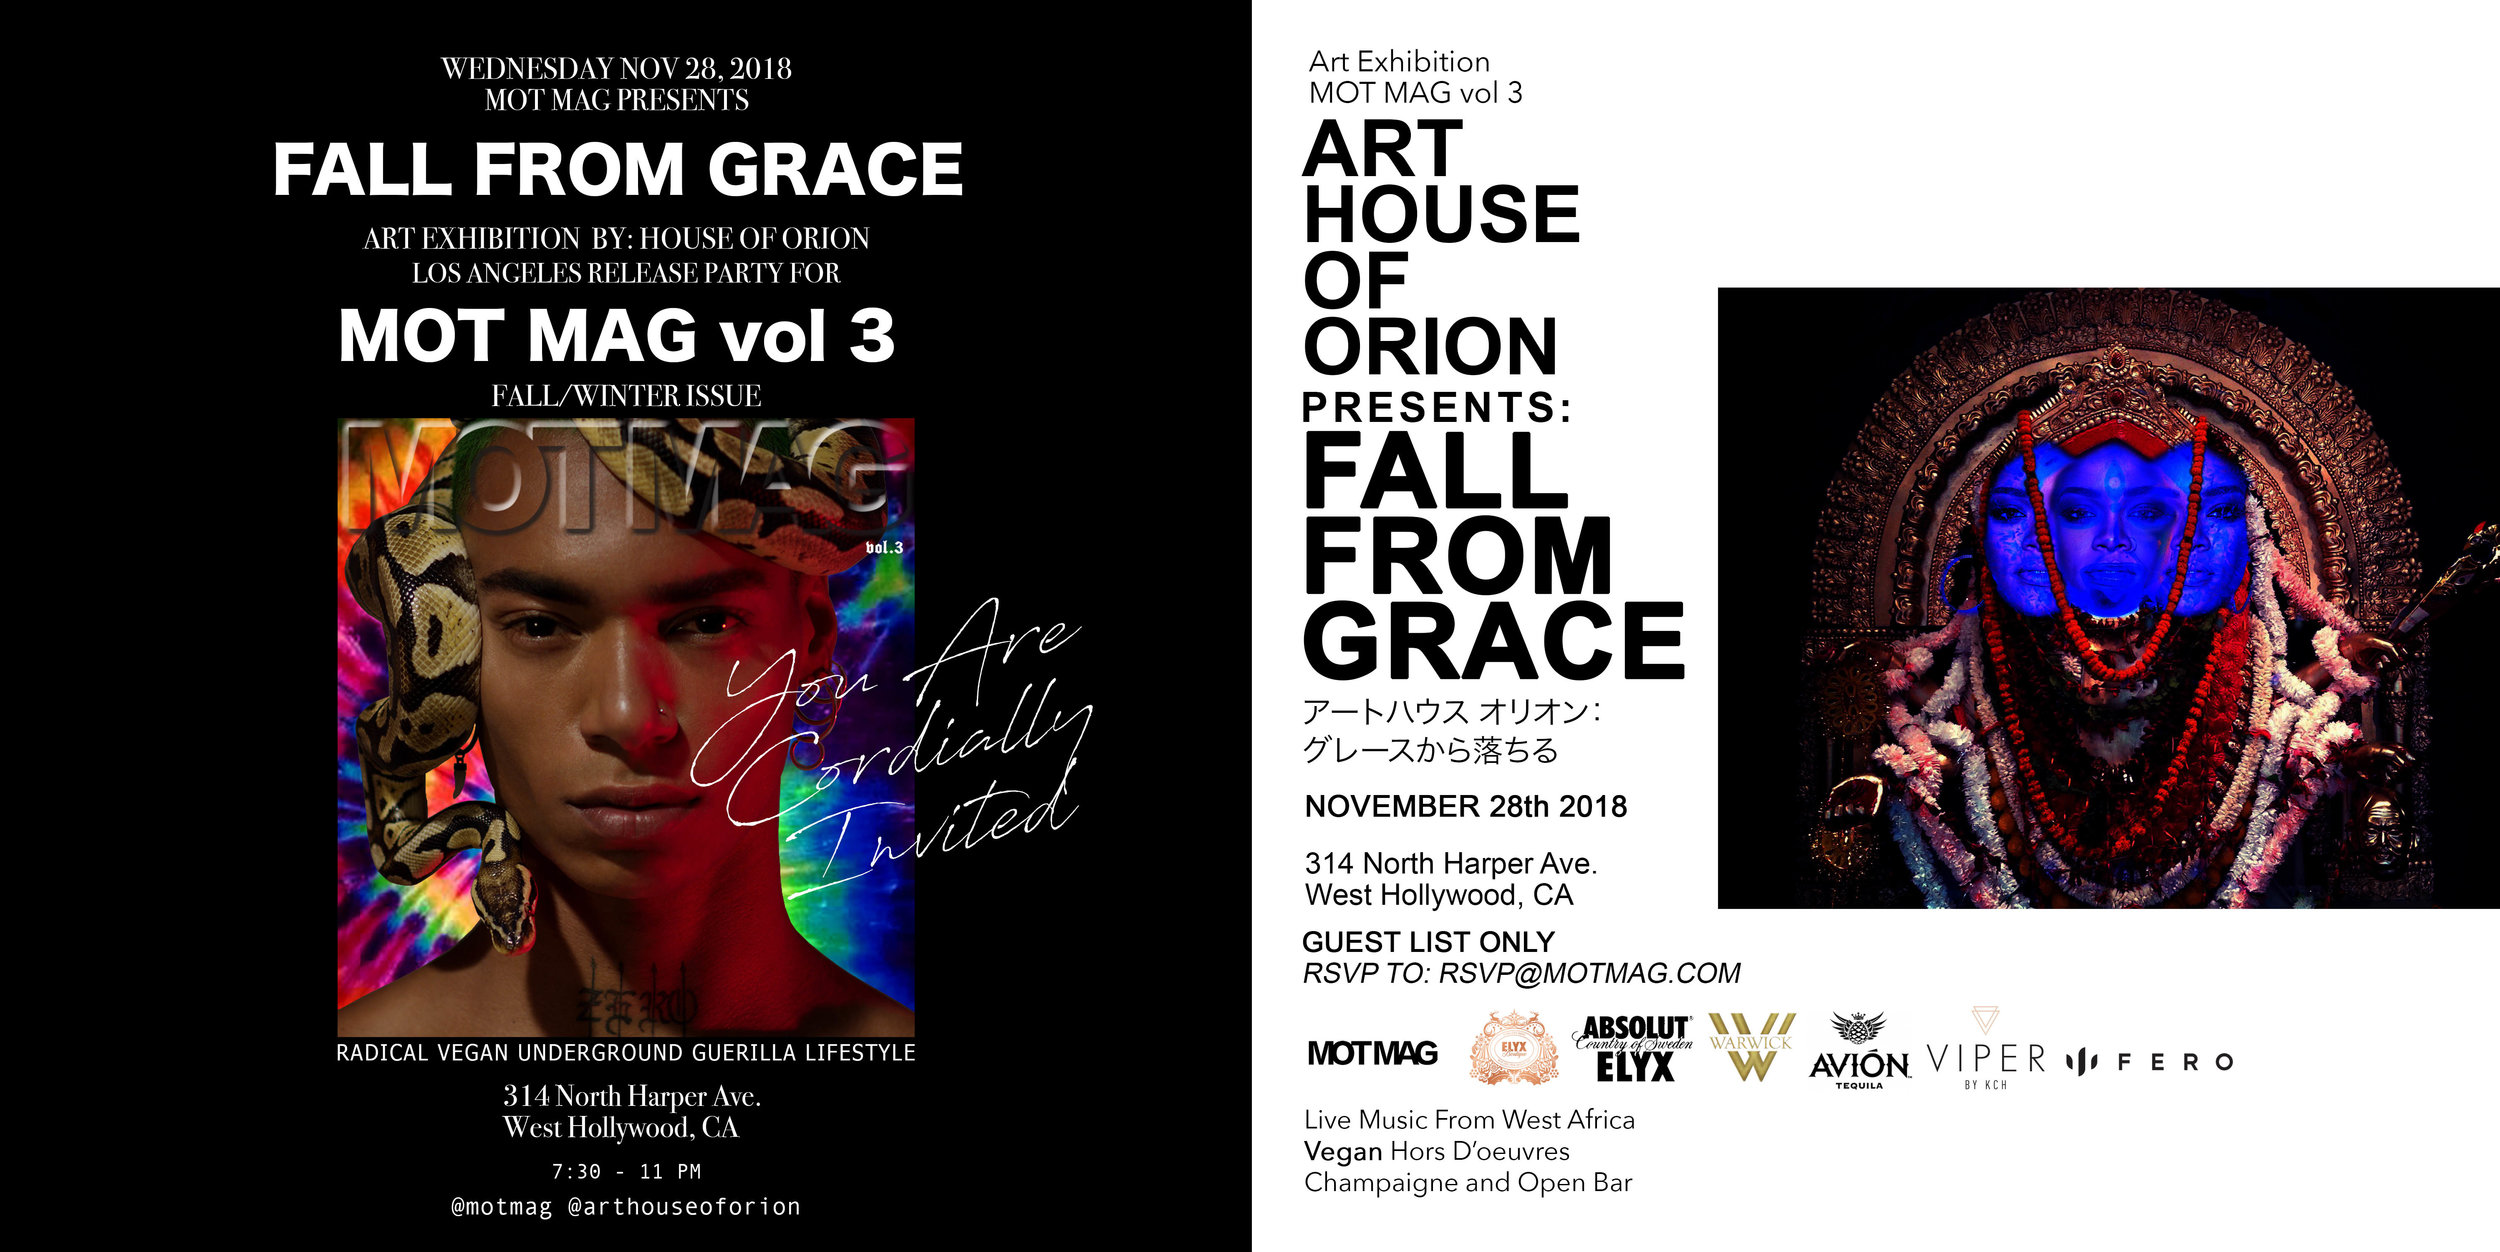 Fall From Grace November 28th